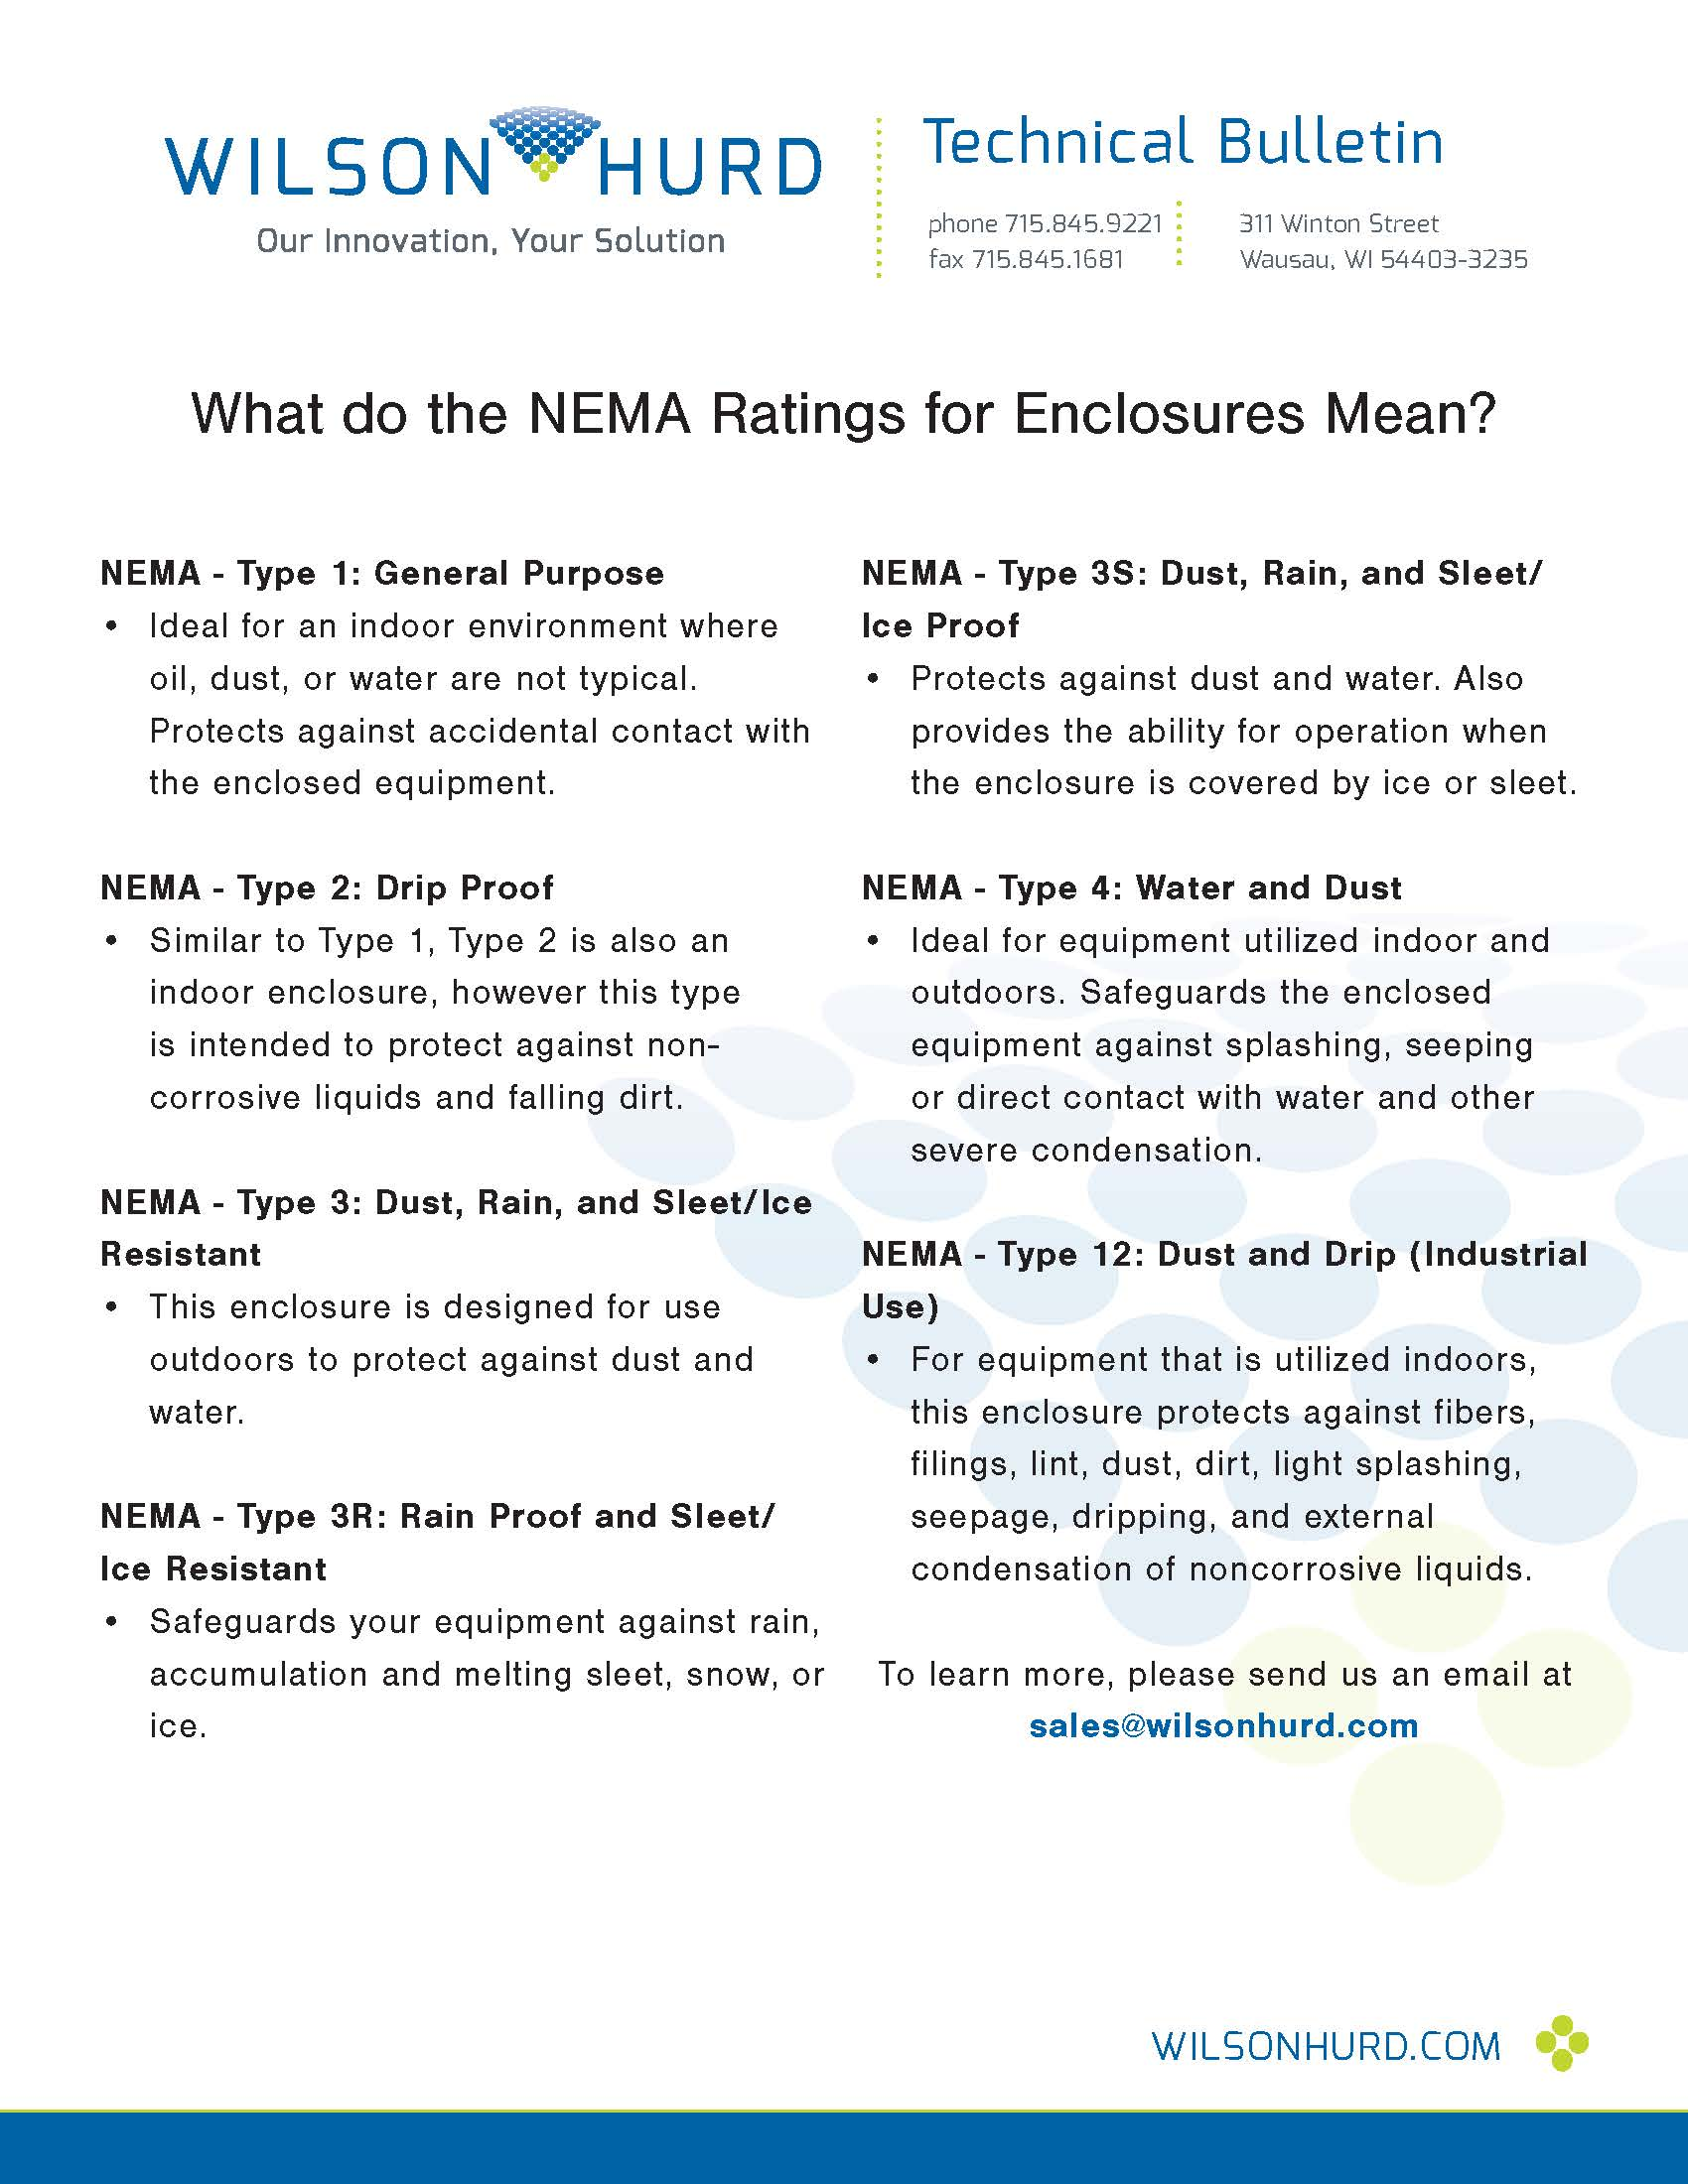 What do NEMA Ratings or Enclosures Mean